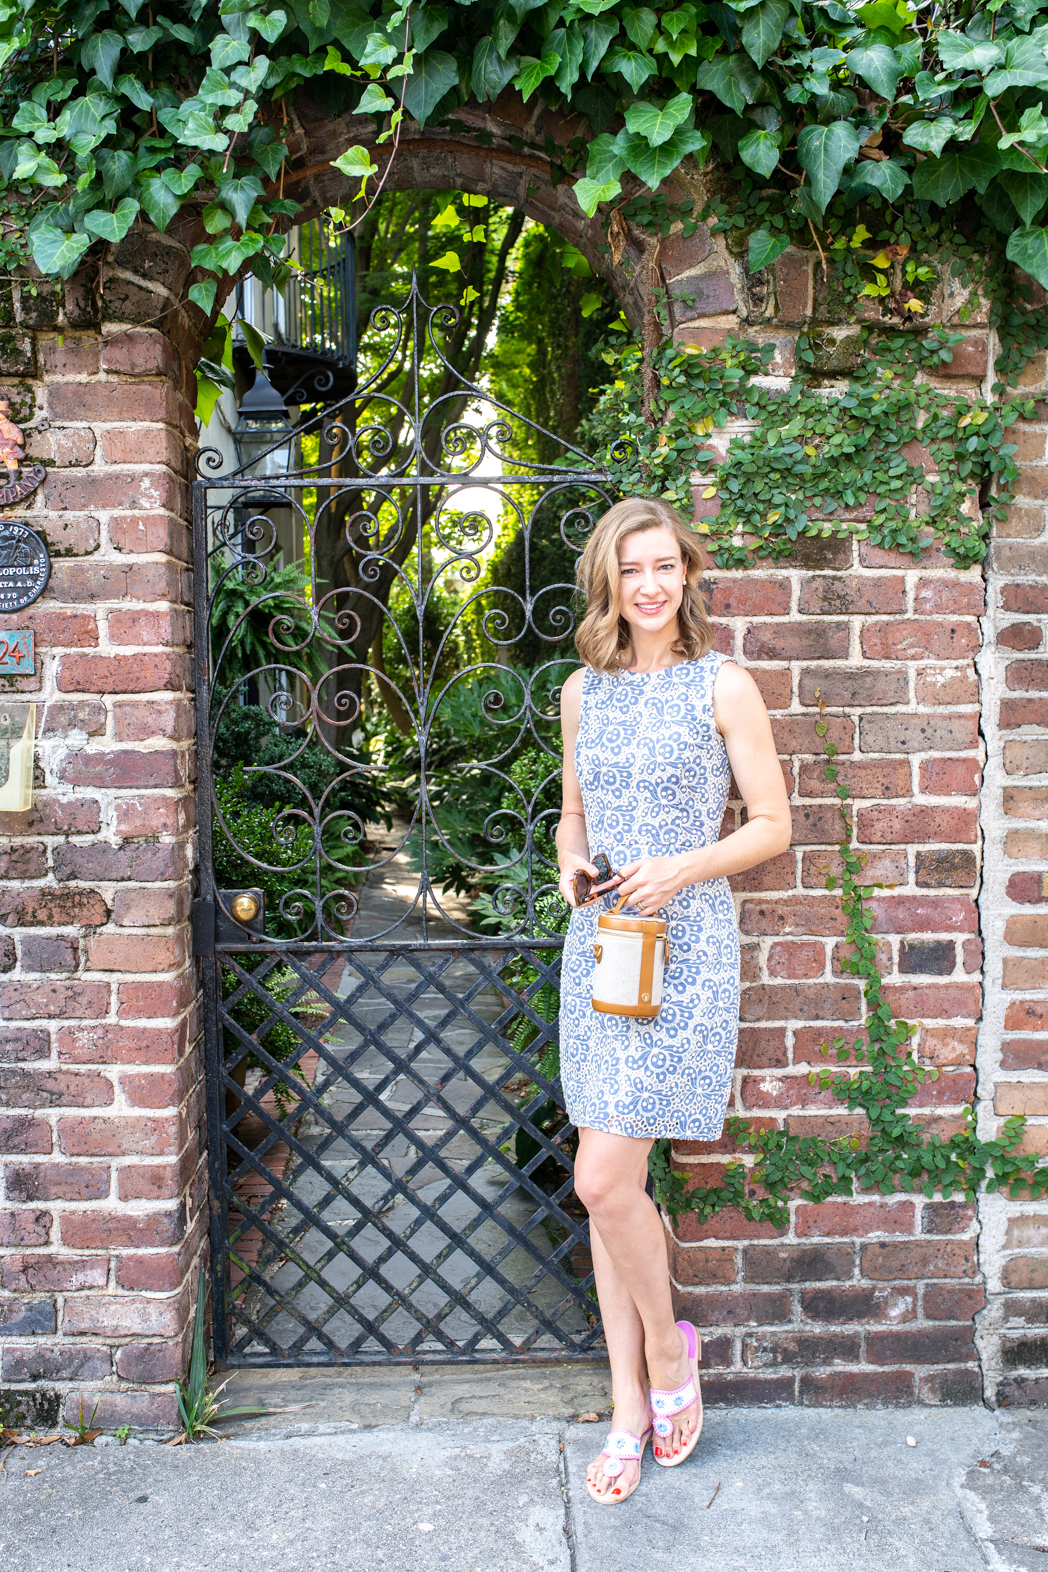 Stacie Flinner Charleston City Guide-34.jpg